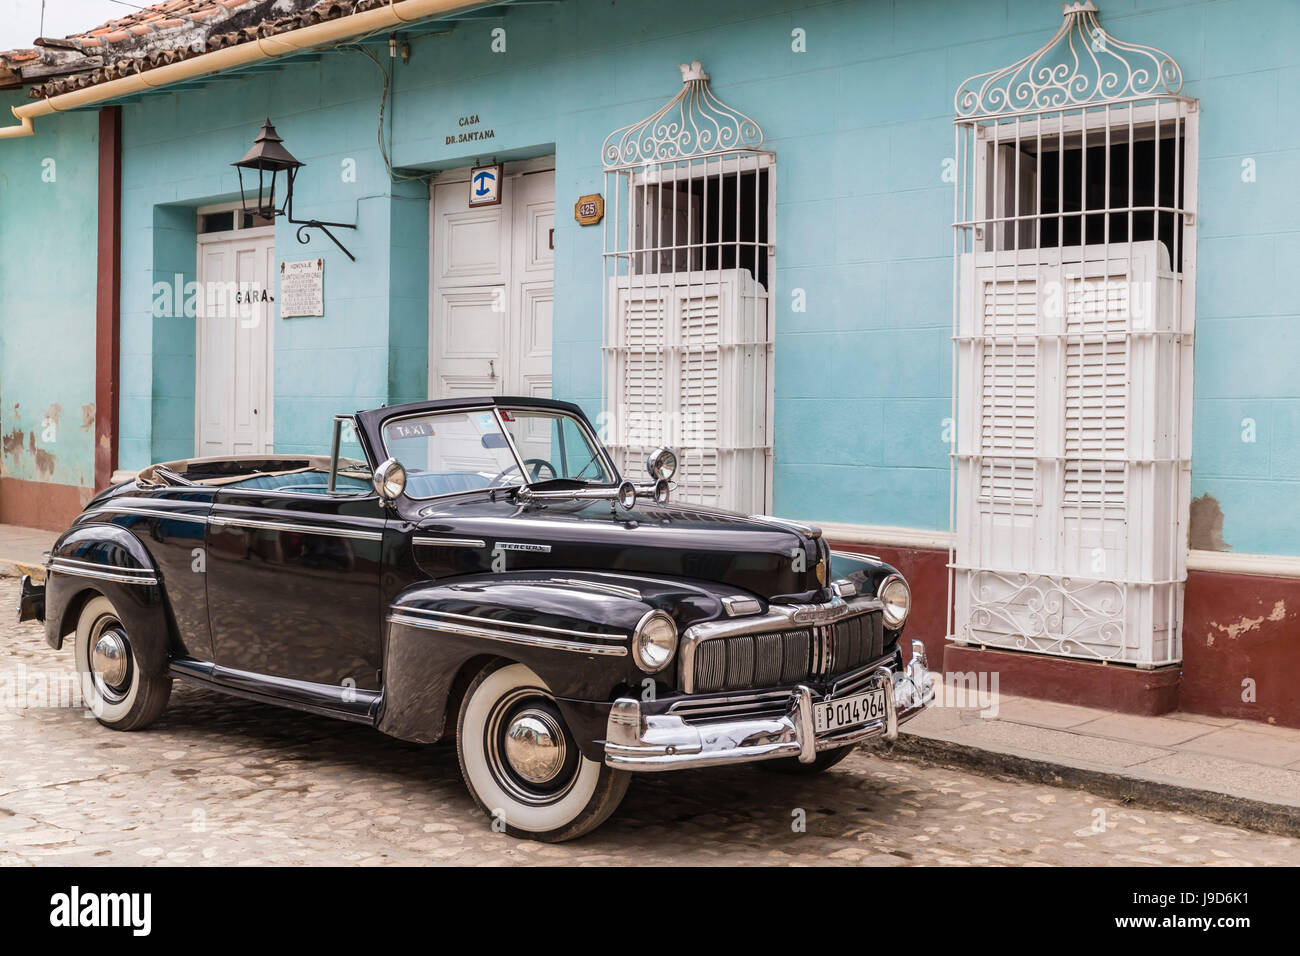 A vintage 1948 American Mercury Eight working as a taxi in the town of Trinidad, UNESCO, Cuba, West Indies, Caribbean - Stock Image